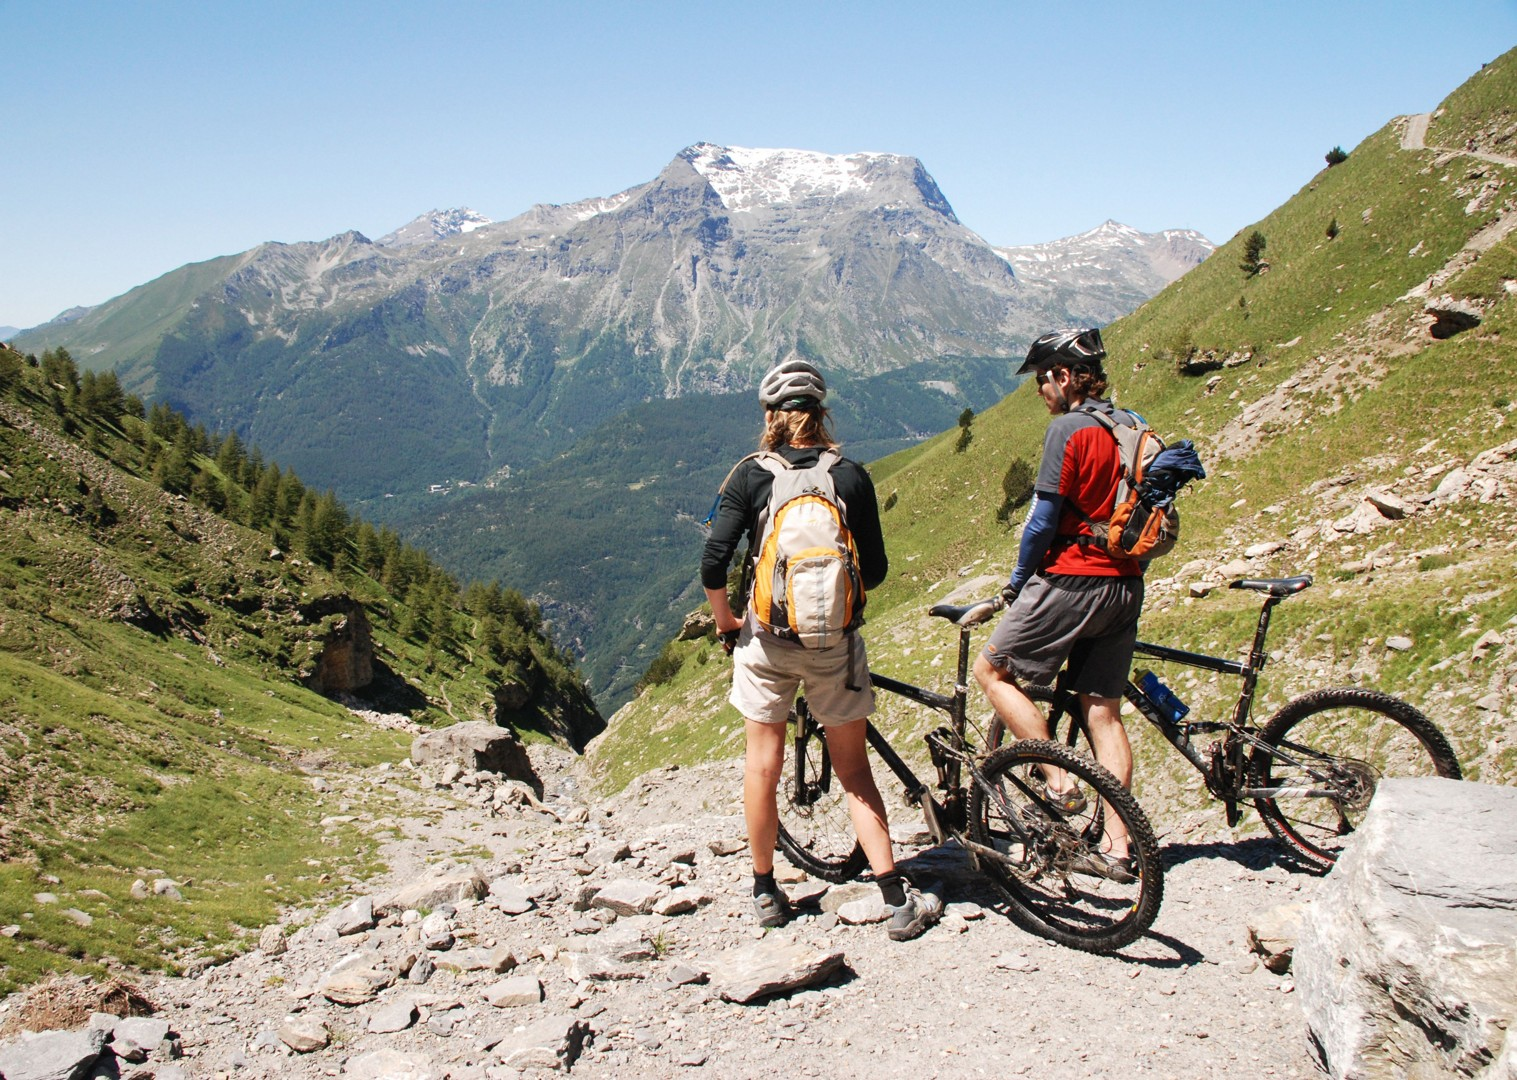 guided-mountain-bike-holiday-italy-and-france-alpine-adventure.JPG - Italy and France - Alpine Adventure - Guided Mountain Bike Holiday - Italia Mountain Biking